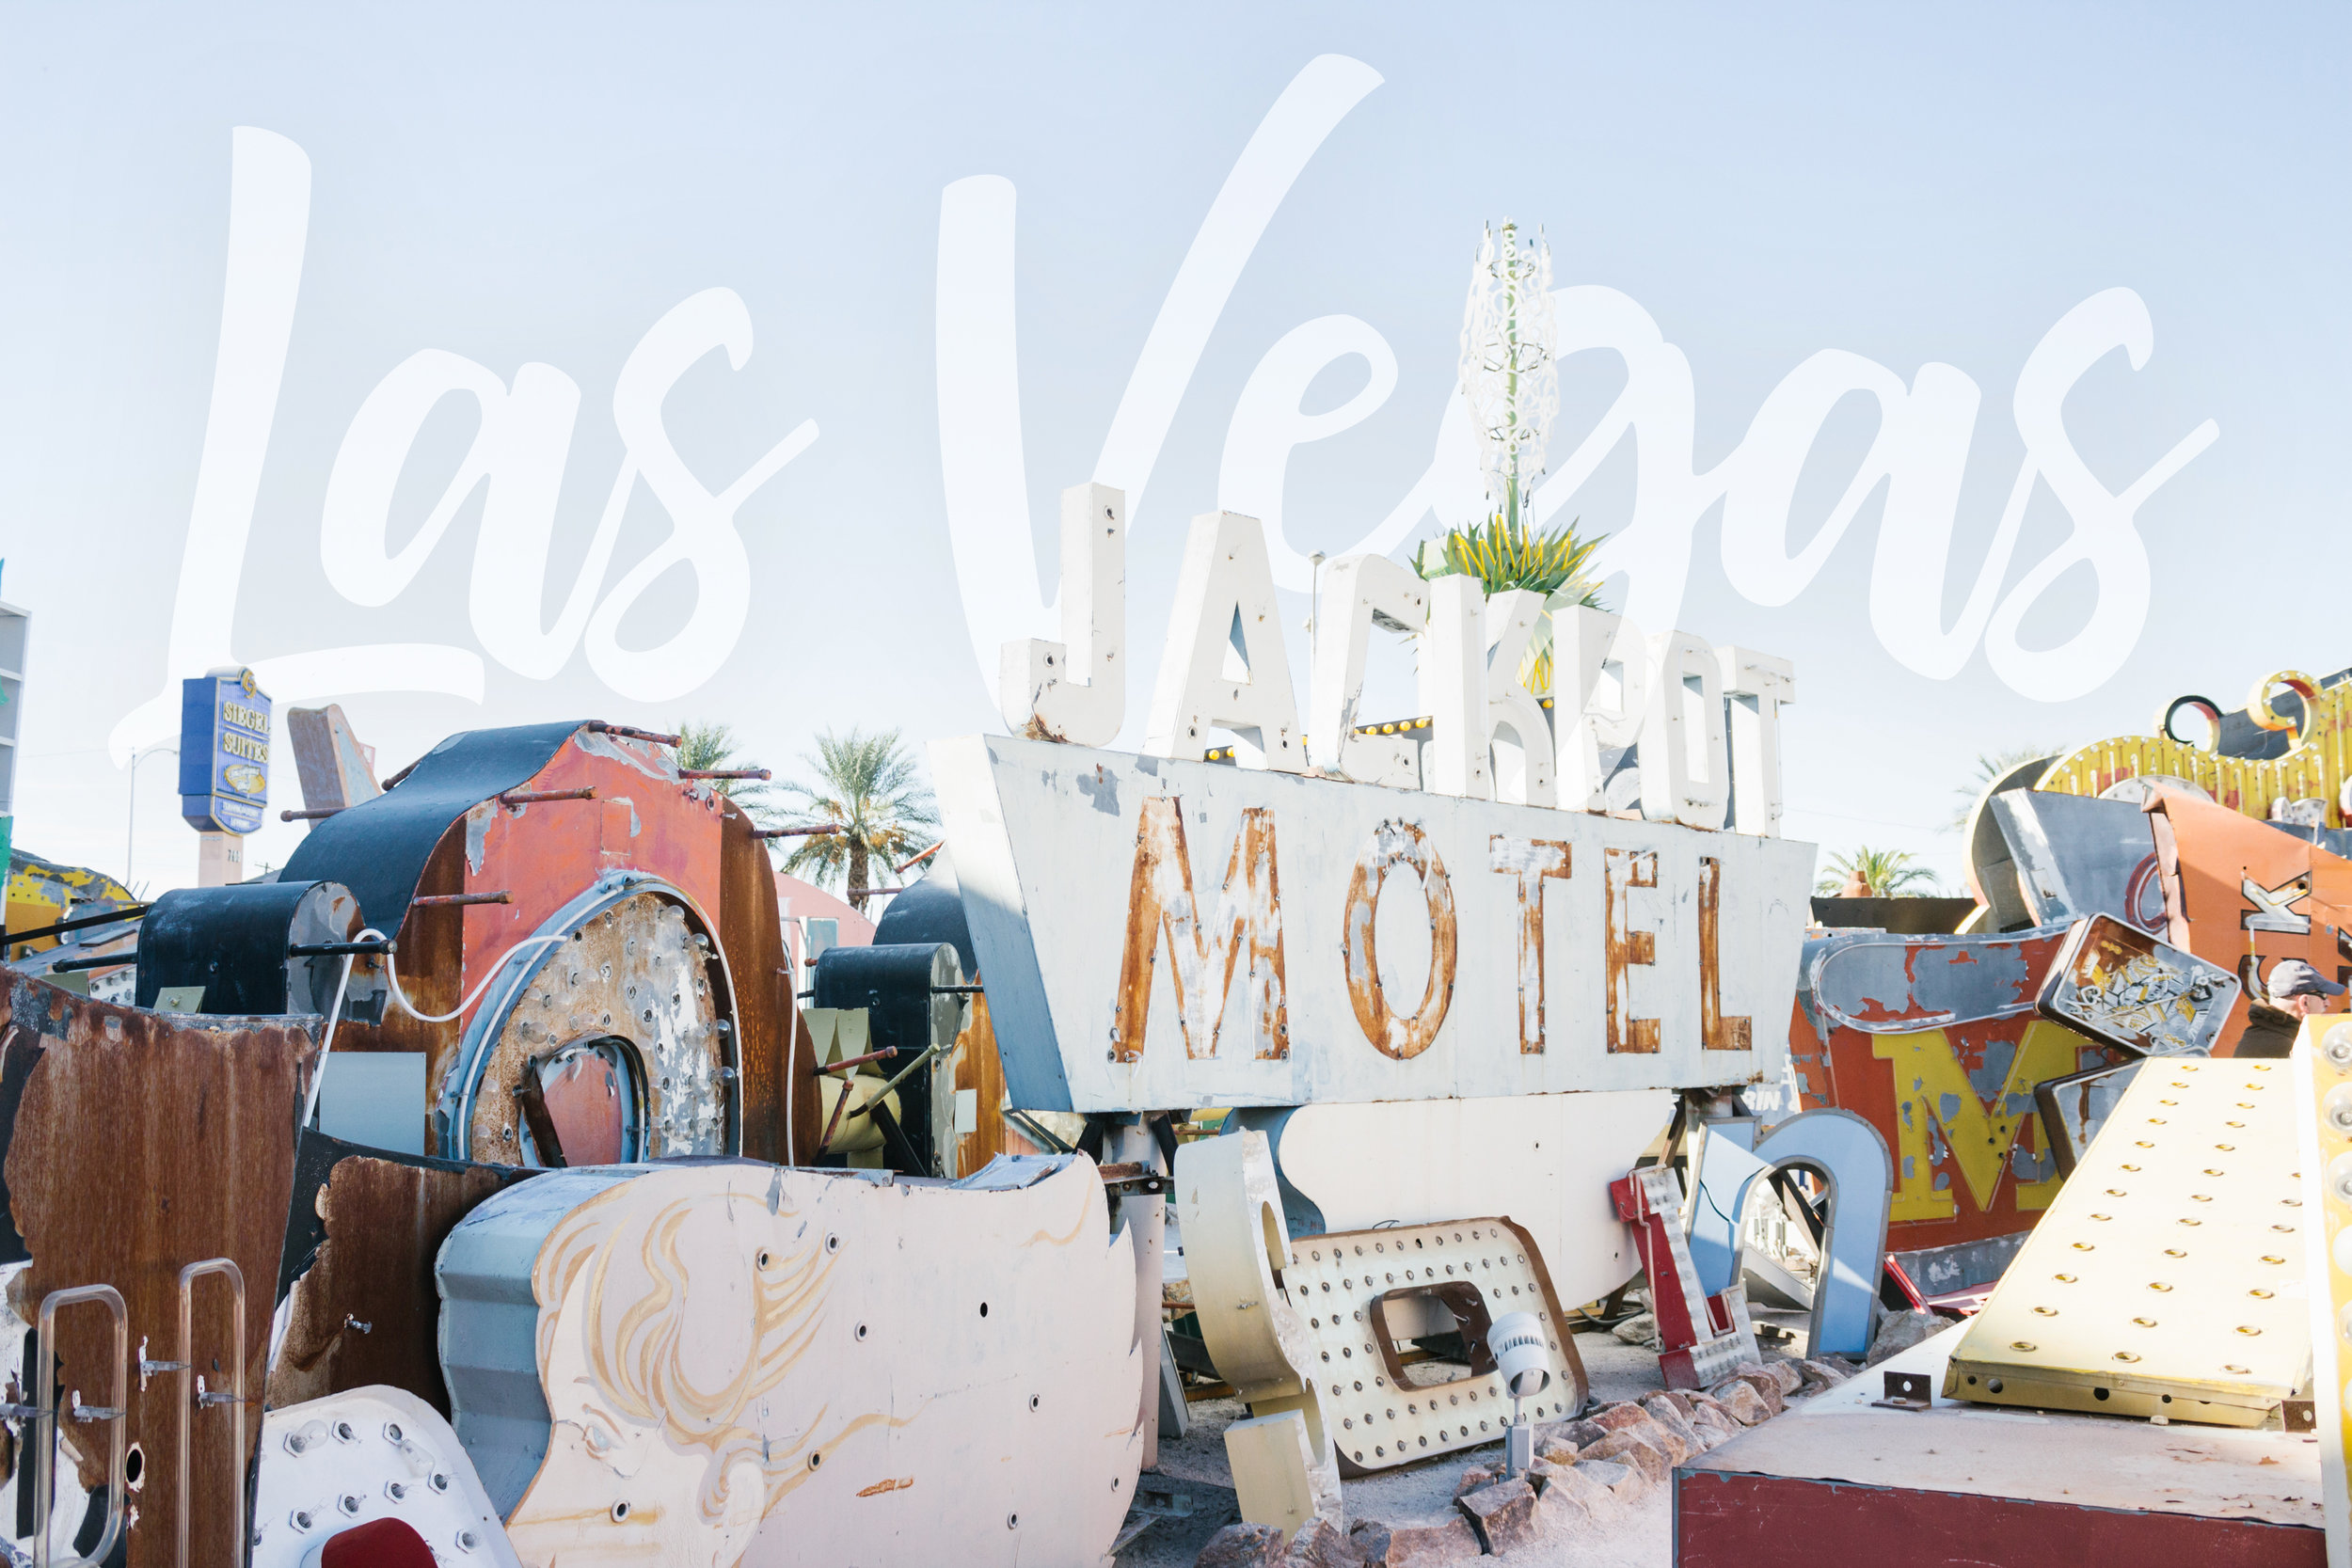 November 2017. Las Vegas, Nevada. The Neon Museum.